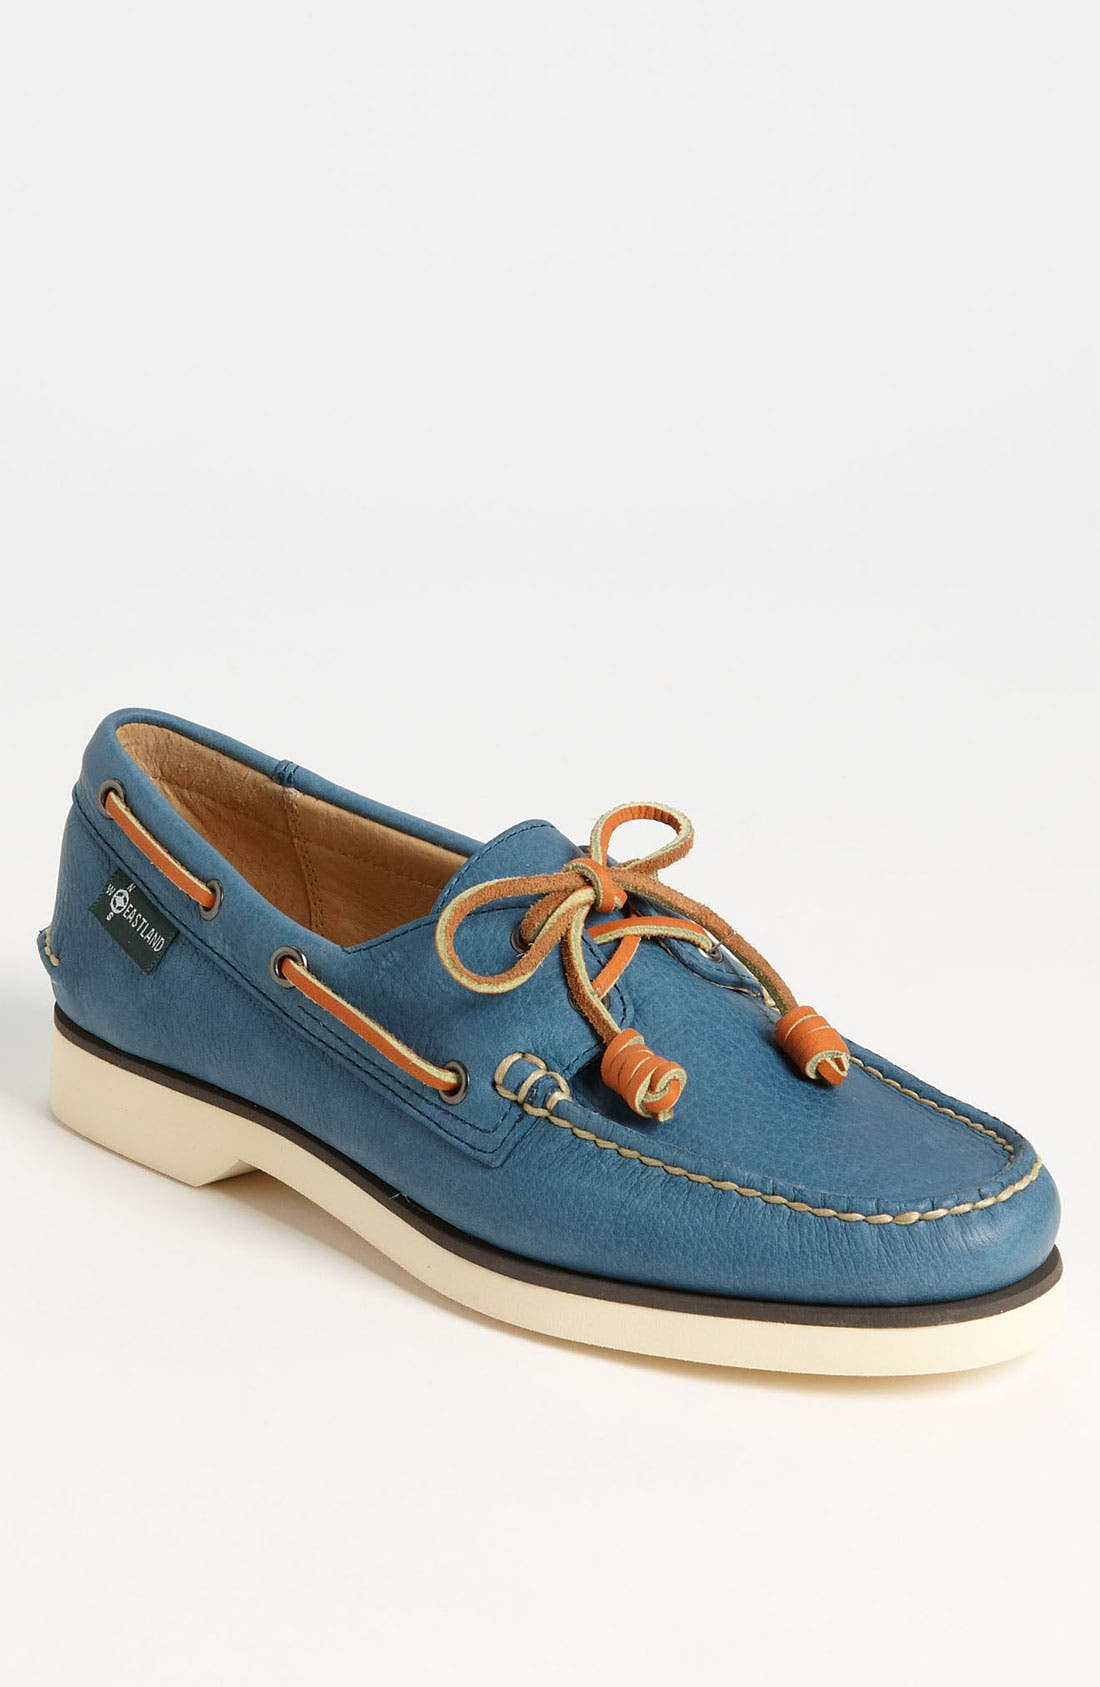 Main Image - Eastland 'Washburn 1955' Boat Shoe